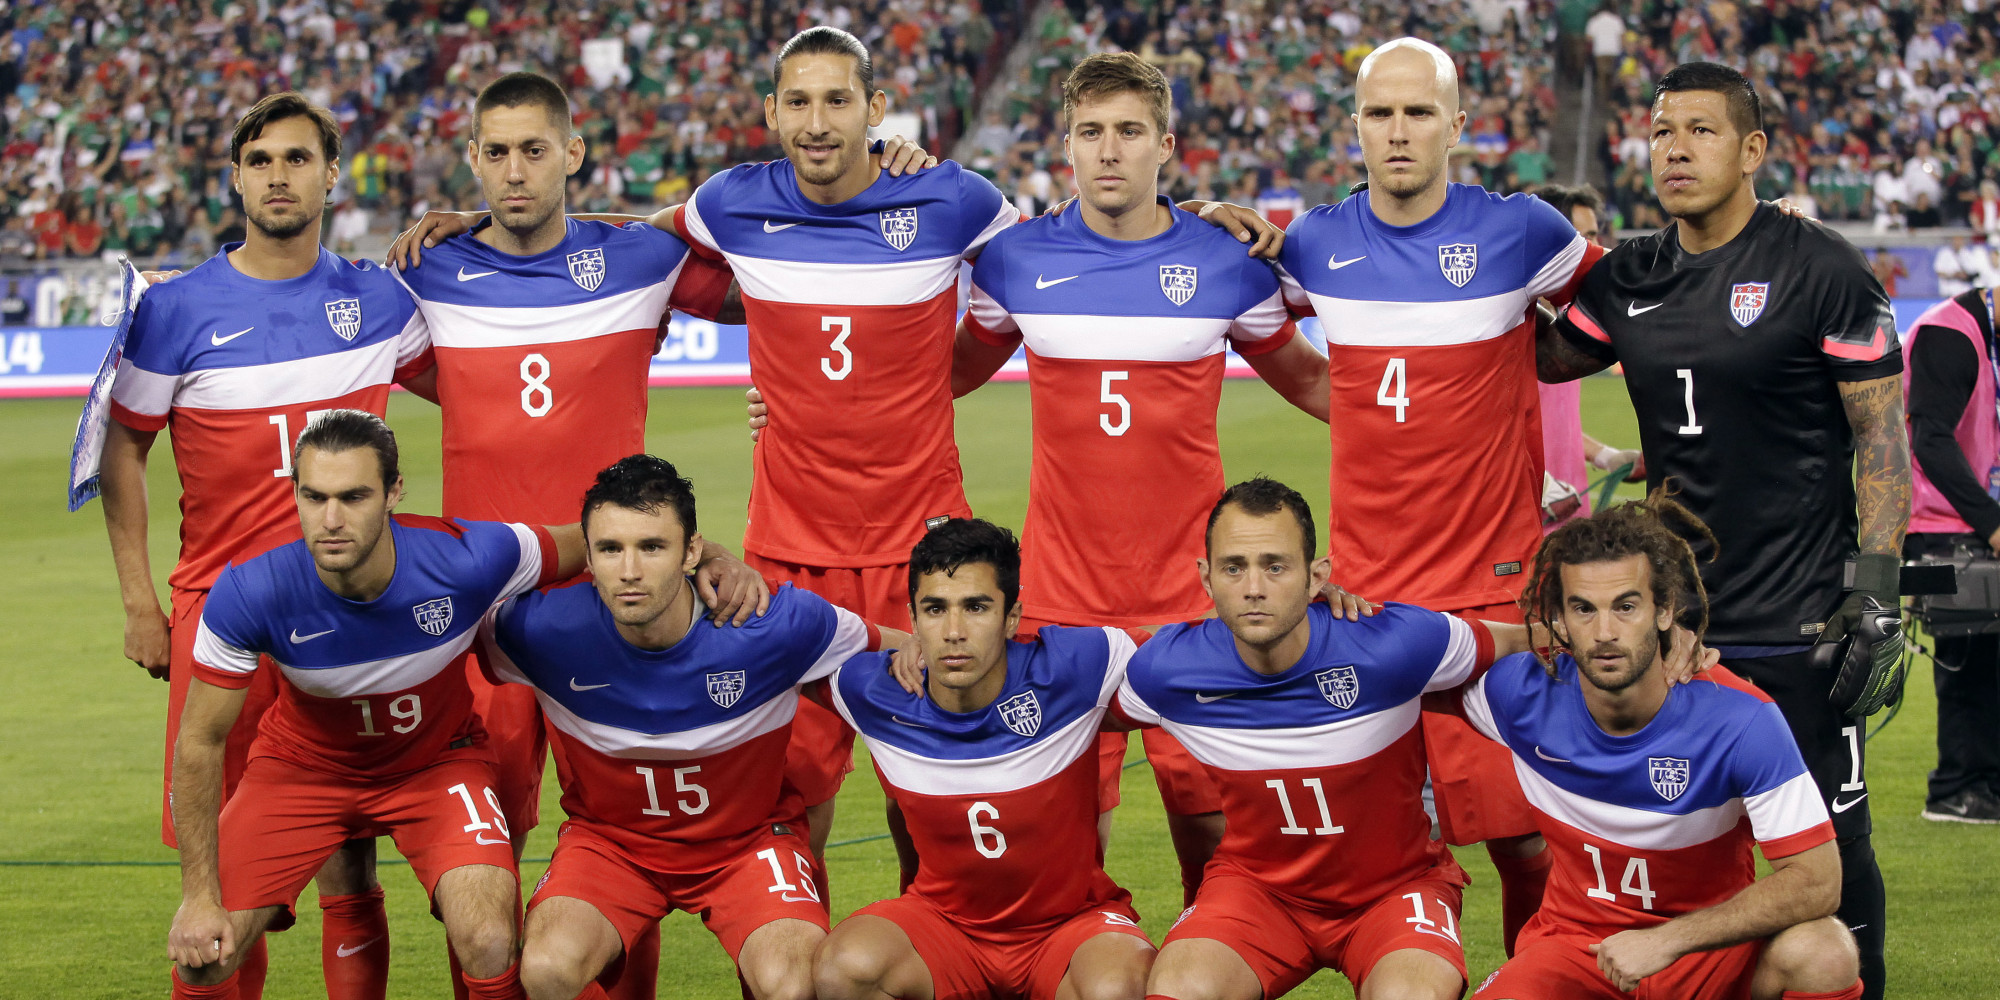 The U.S. team poses before an international friendly soccer match against Mexico Wednesday, April 2, 2014, in Glendale, Ariz. The game ended in a 2-2 draw. (AP Photo/Rock Scuteri)